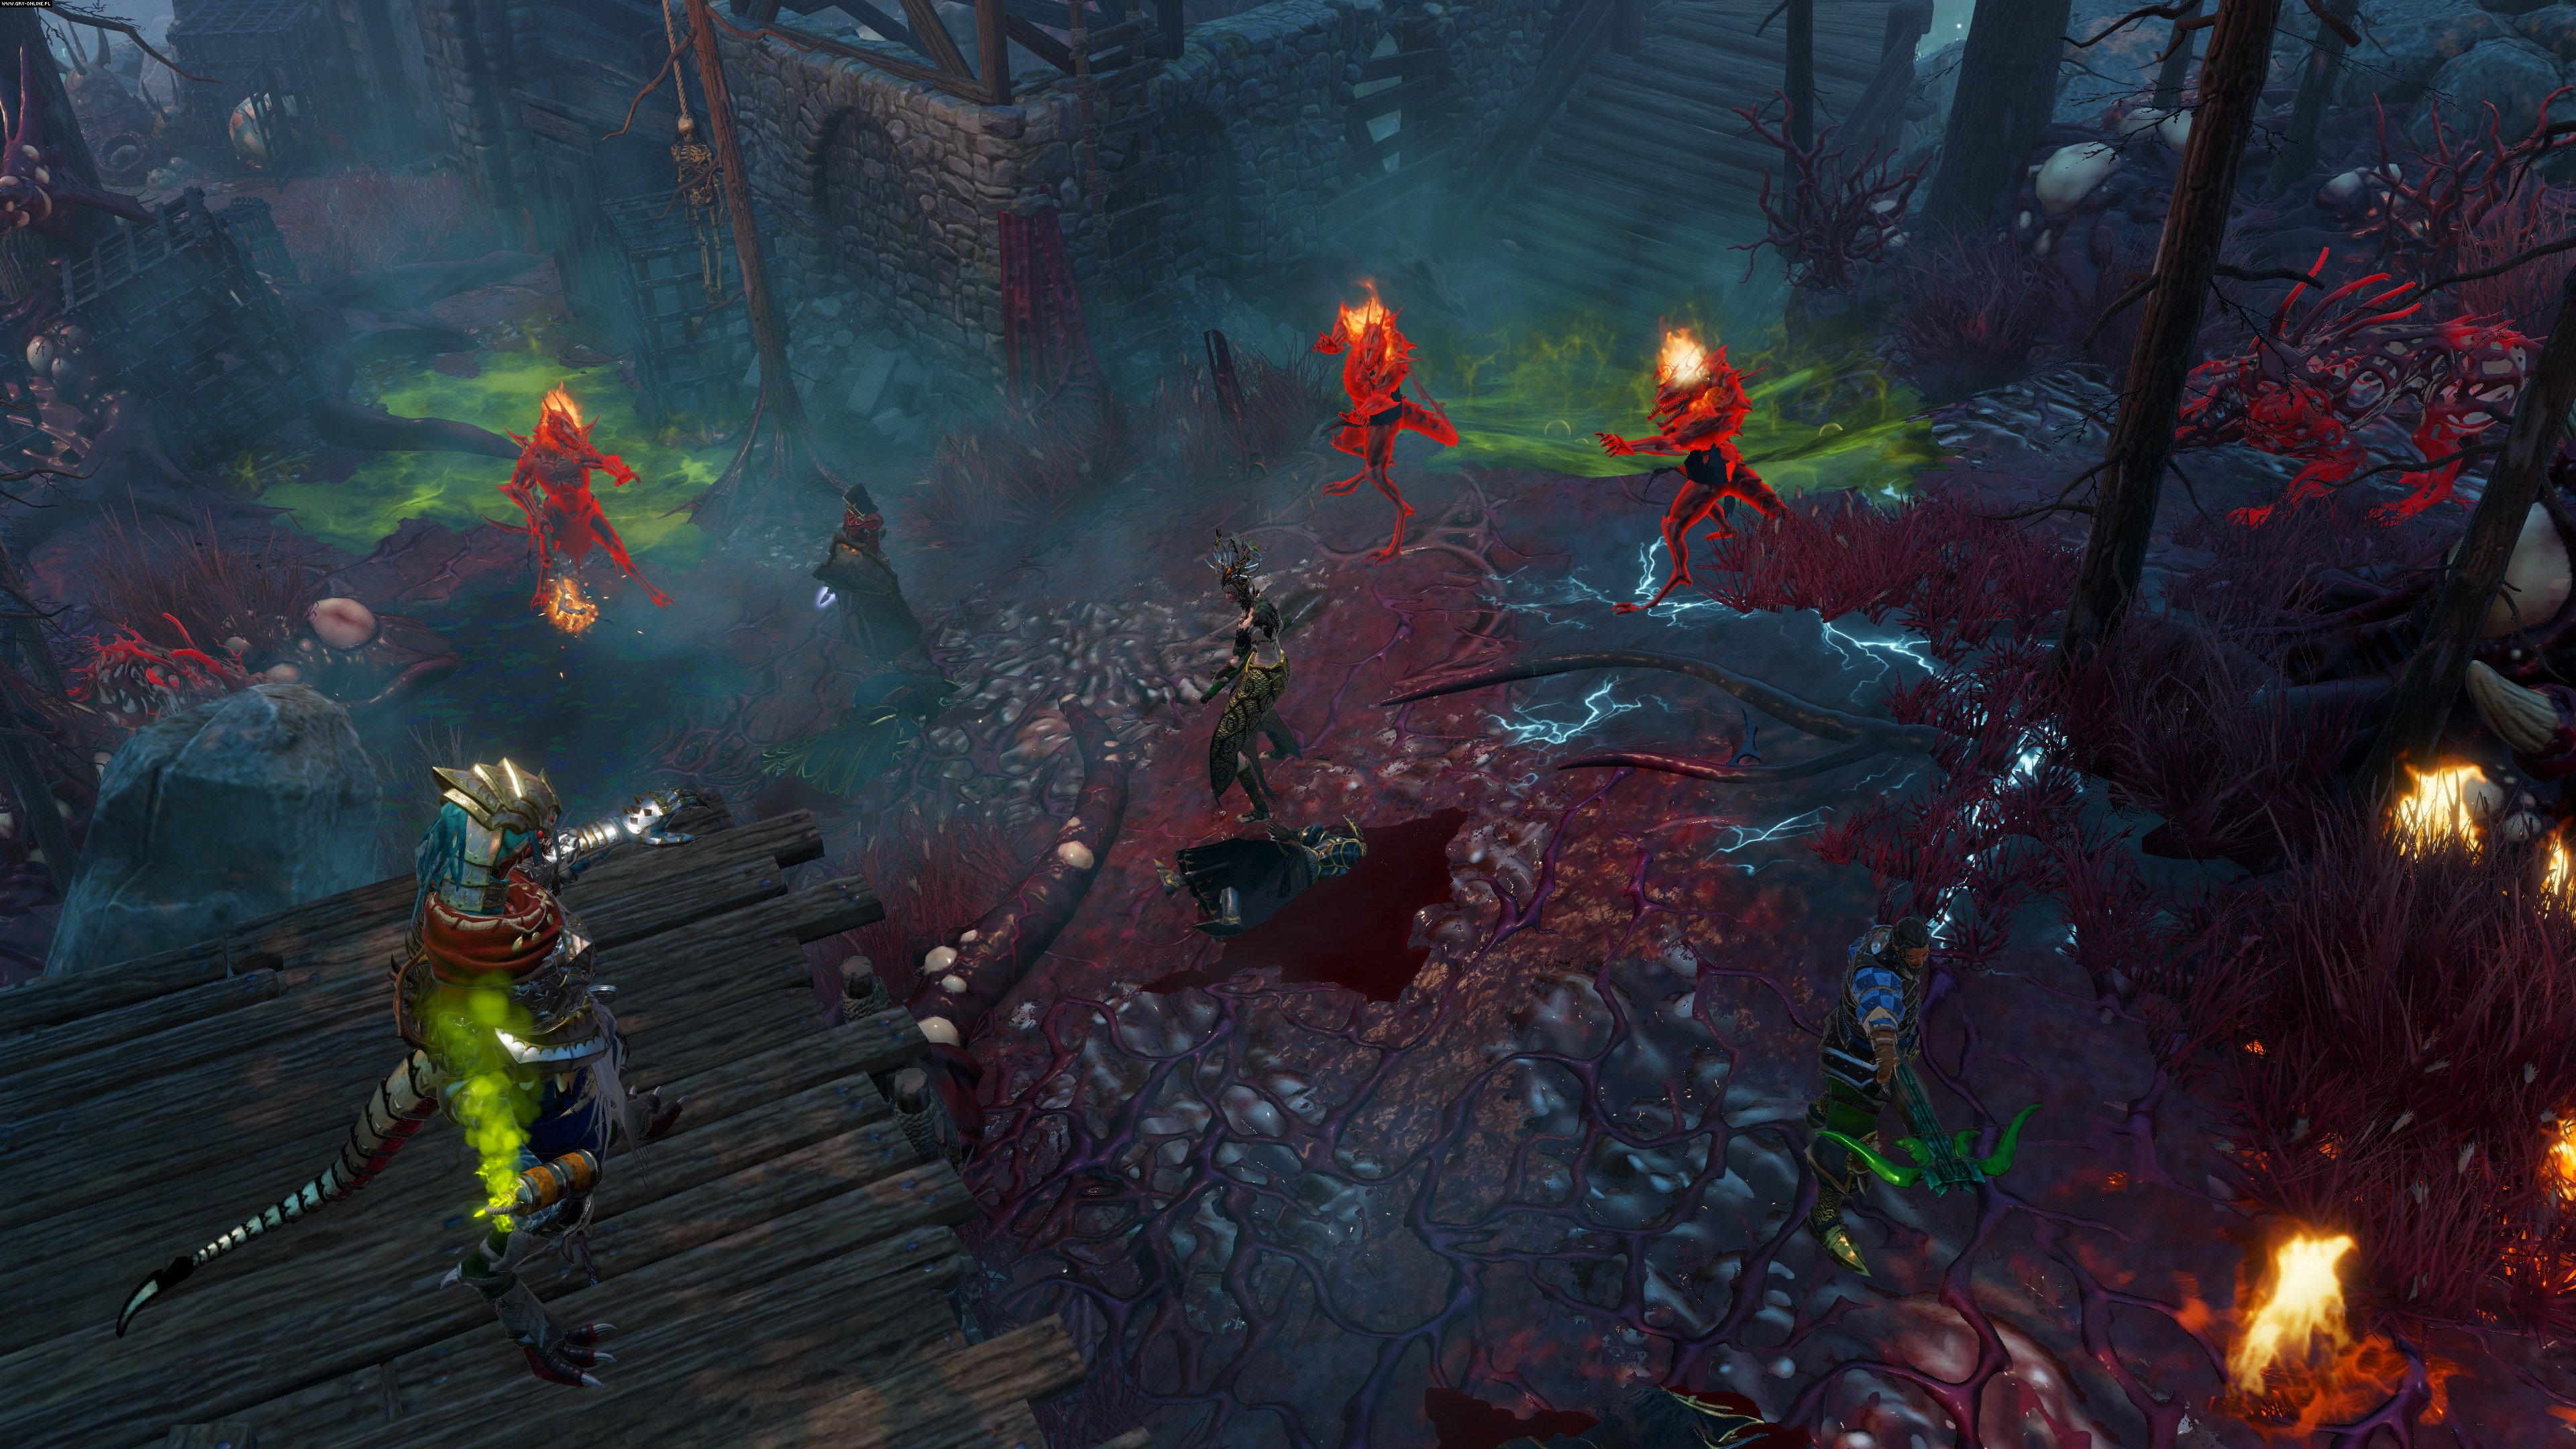 Divinity: Original Sin II - Definitive Edition PC, PS4, XONE Games Image 33/304, Larian Studios